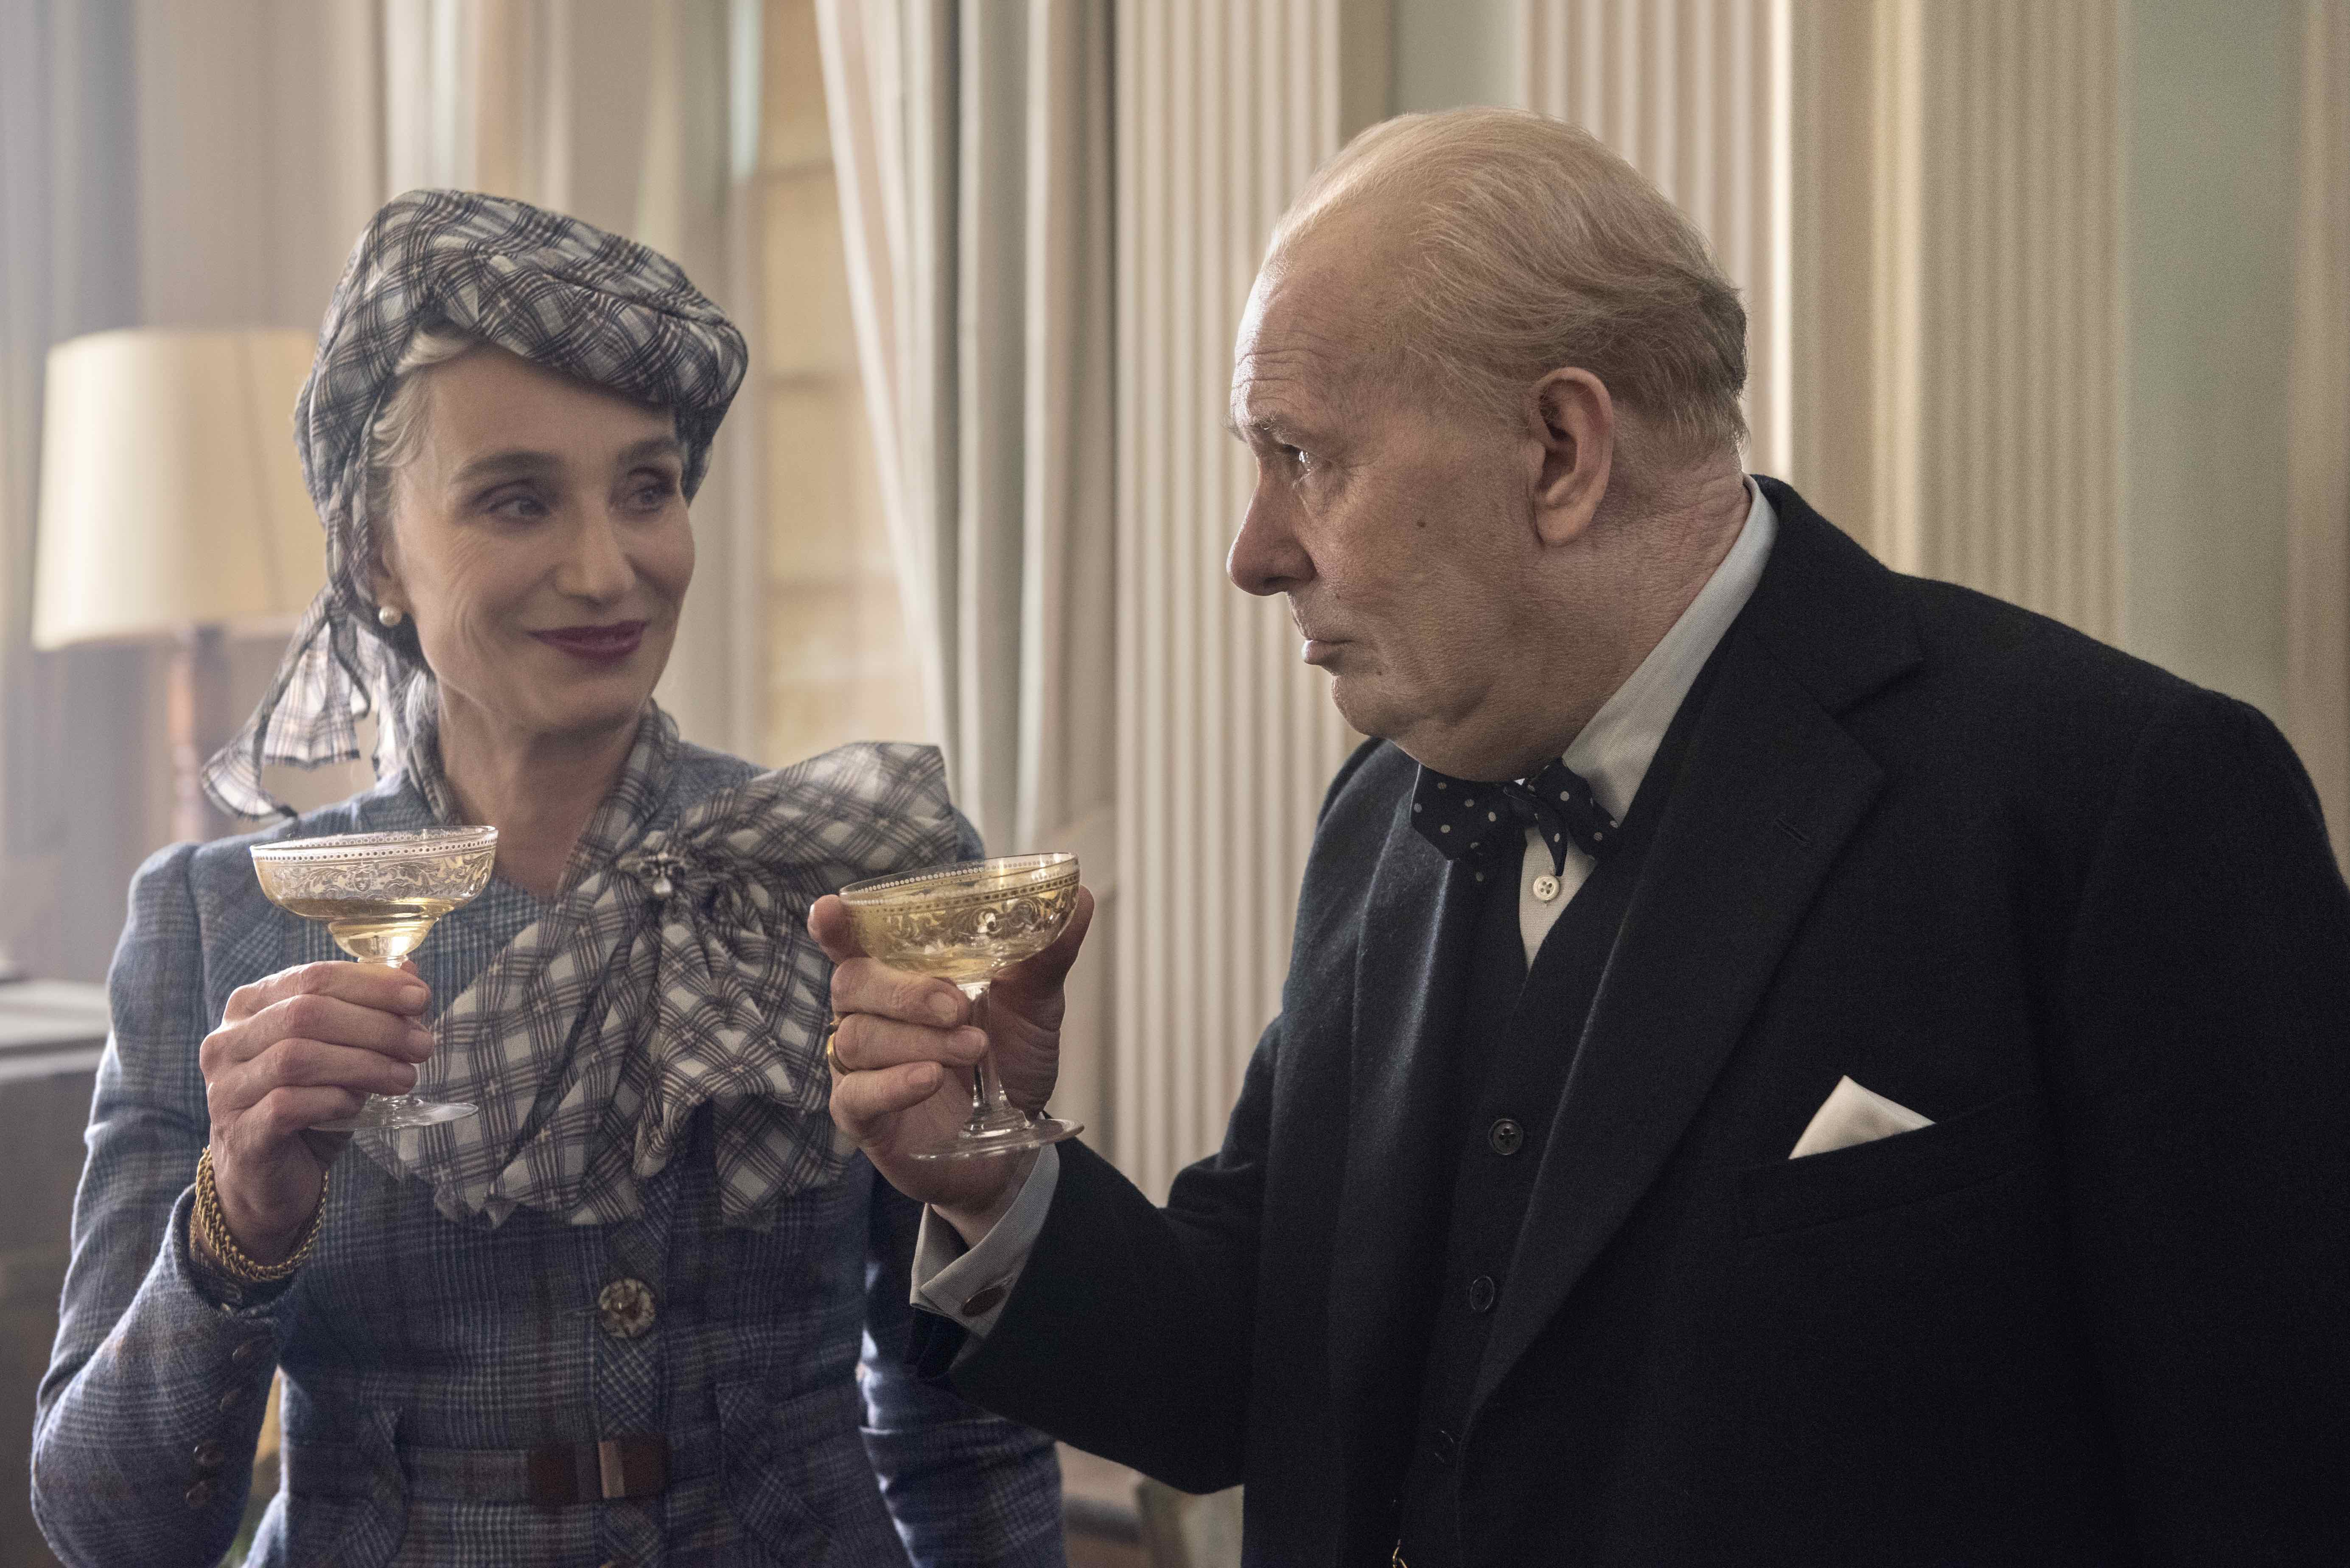 4106_D021_00105_R_CROPKristin Scott Thomas and Gary Oldman star as Clementine and Winston Churchill in director JoeWright's DARKEST HOUR, a Focus Features release.Credit: Jack English / Focus Features